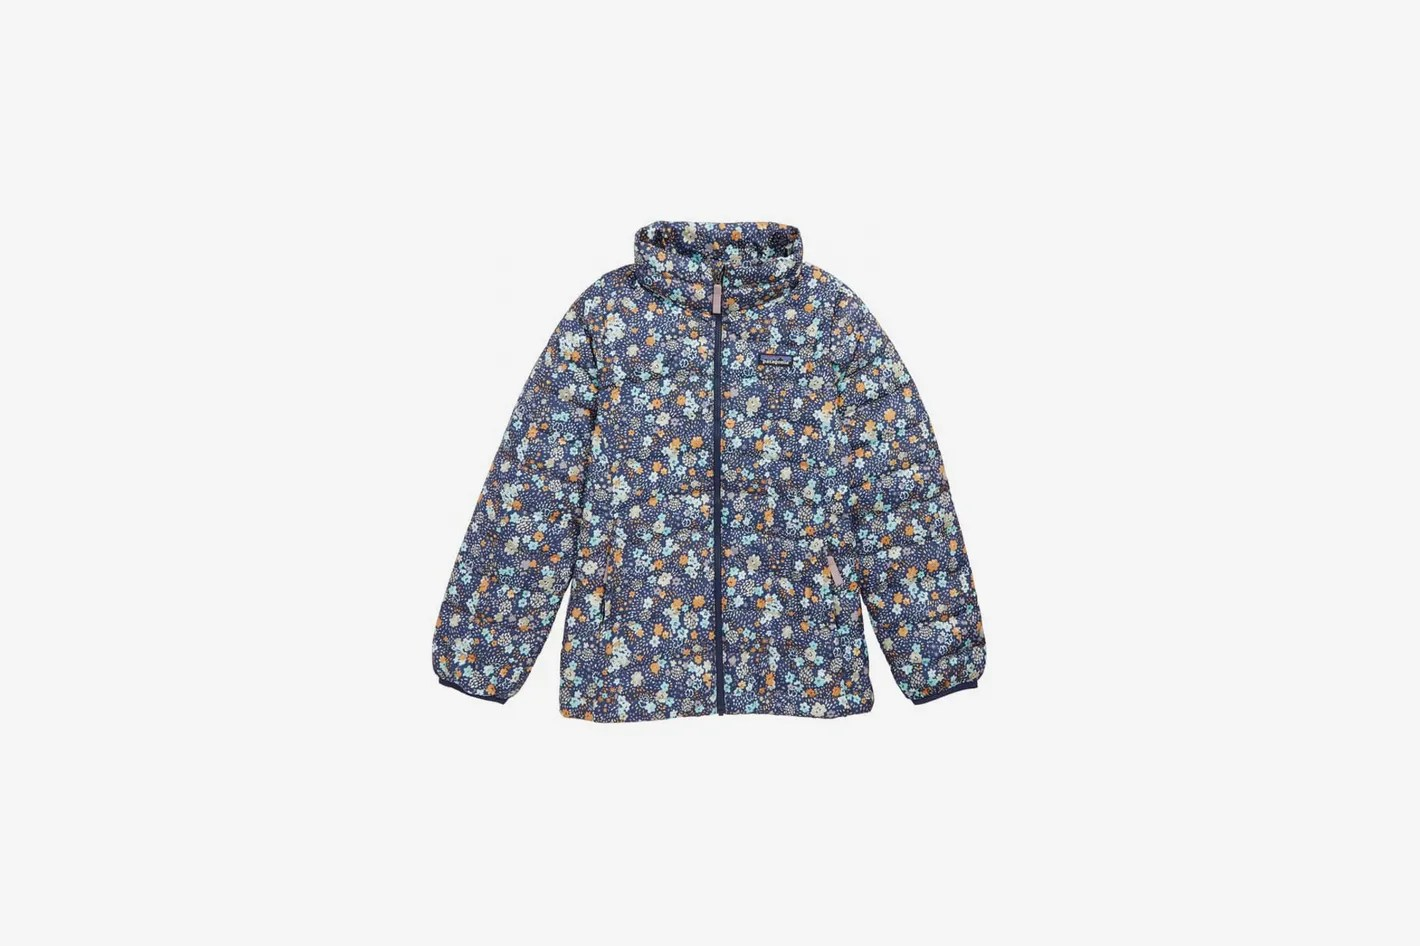 16 Patagonia Kids' Jackets on Sale at Nordstrom: 2019